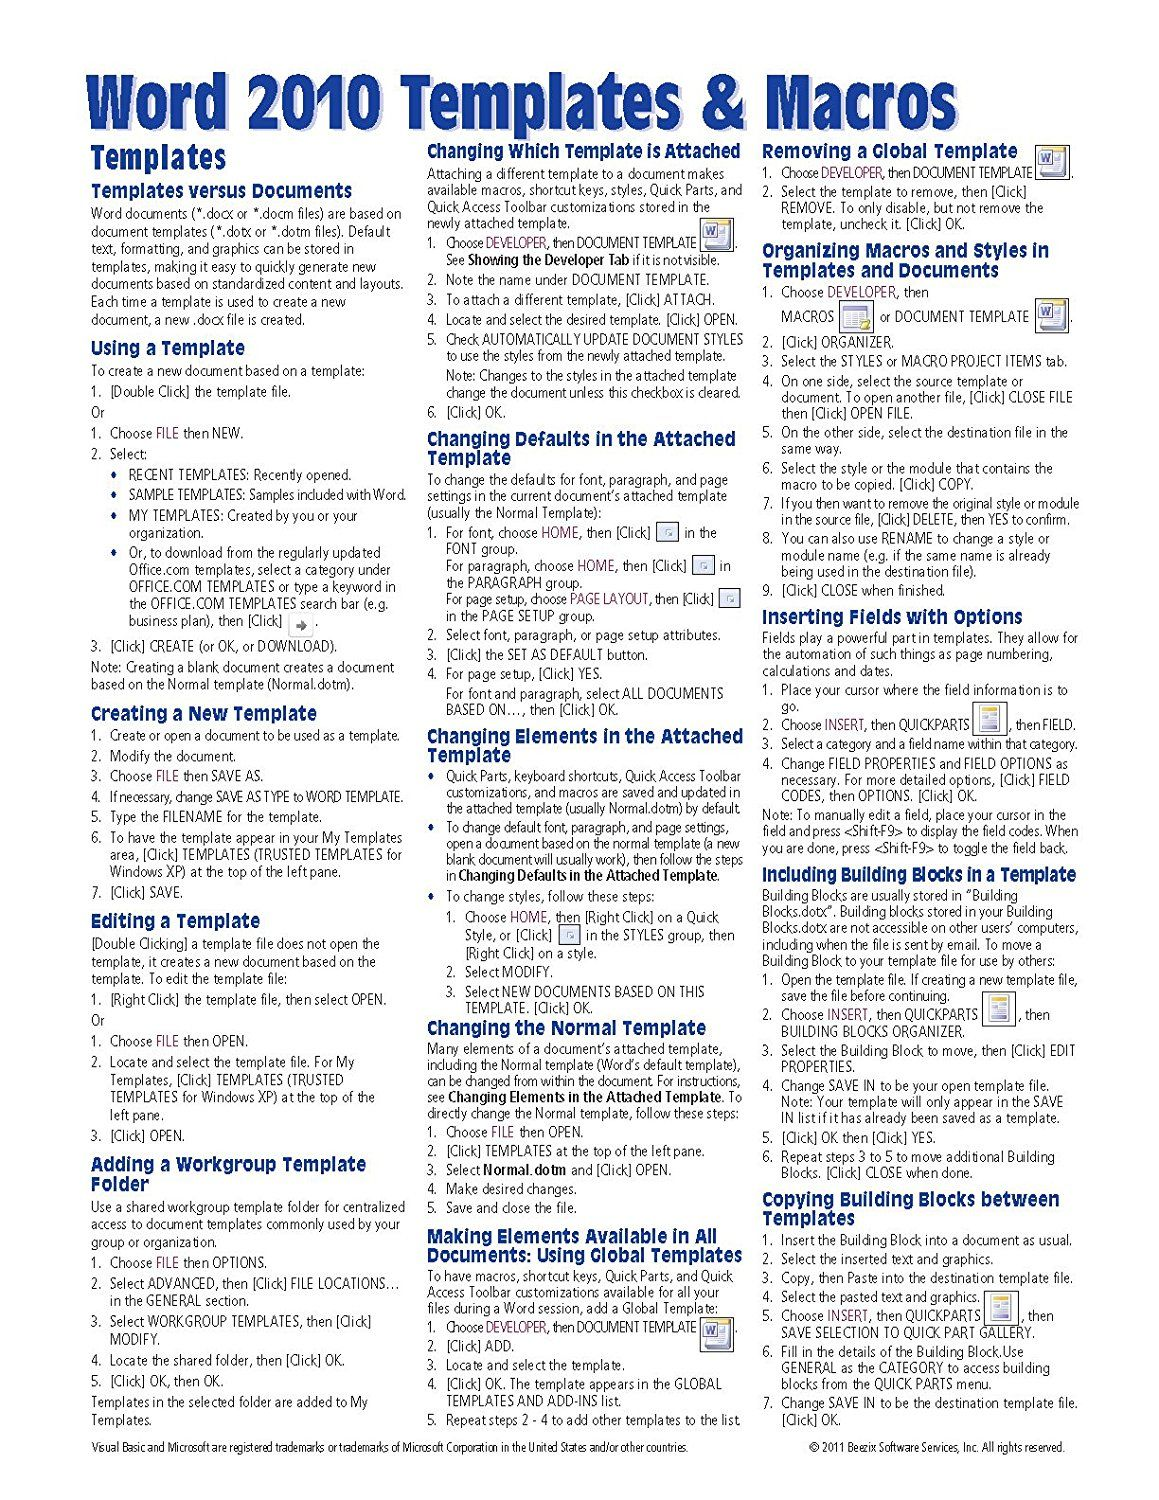 Microsoft Word Templates Amp Macros Quick Reference Guide Cheat Sheet Of Instructions Tips